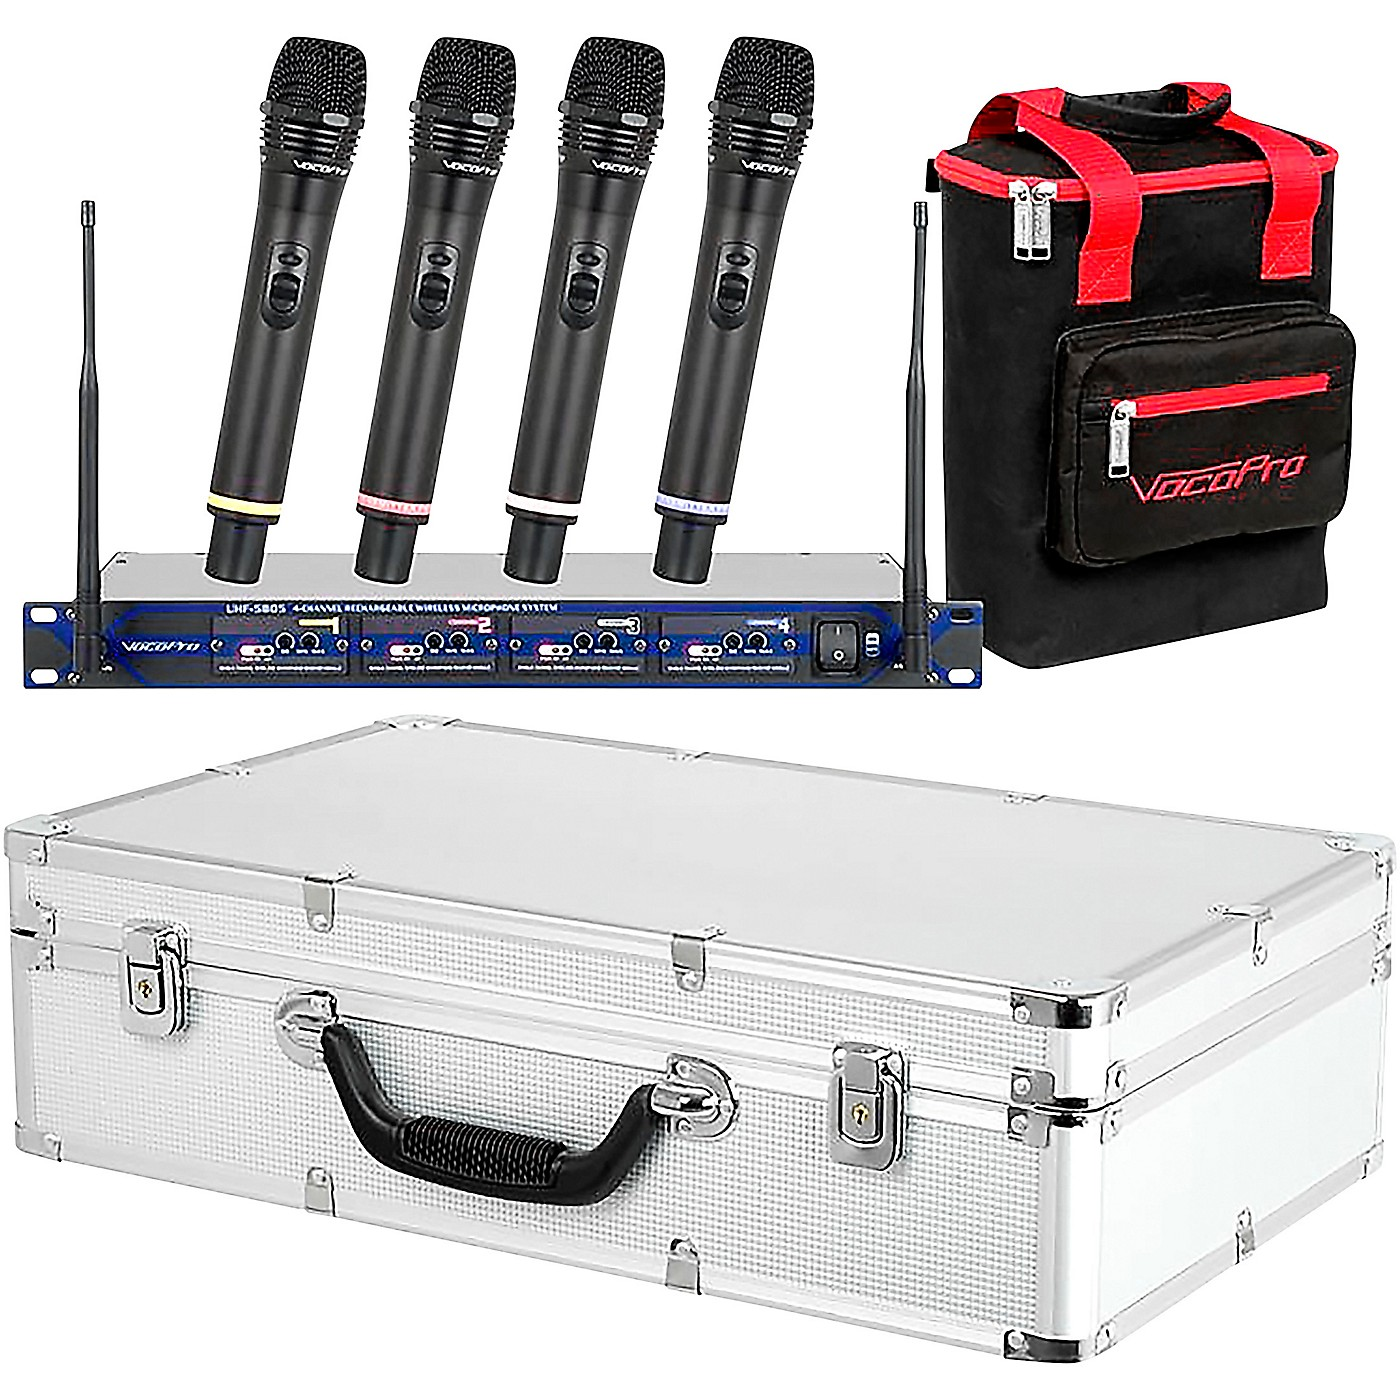 VocoPro UHF-5805 Plus Rechargeable Wireless System with Mic Bag thumbnail